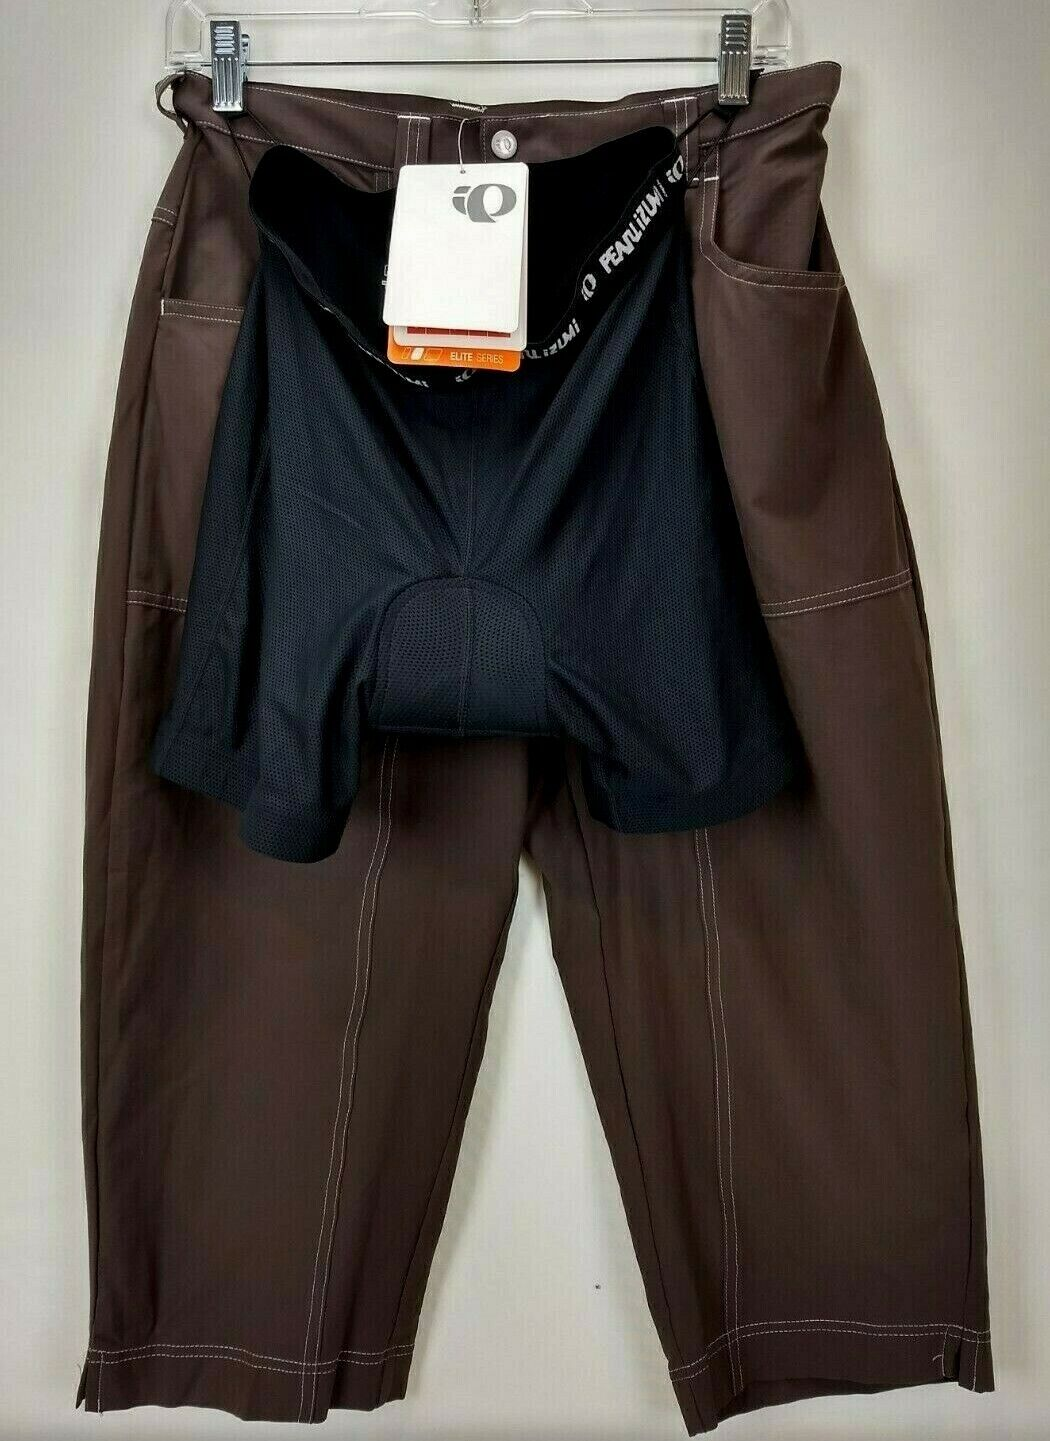 Pearl Izumi Womens Elite Versa Capri Cycling Pants Size Medium Brown With Liner